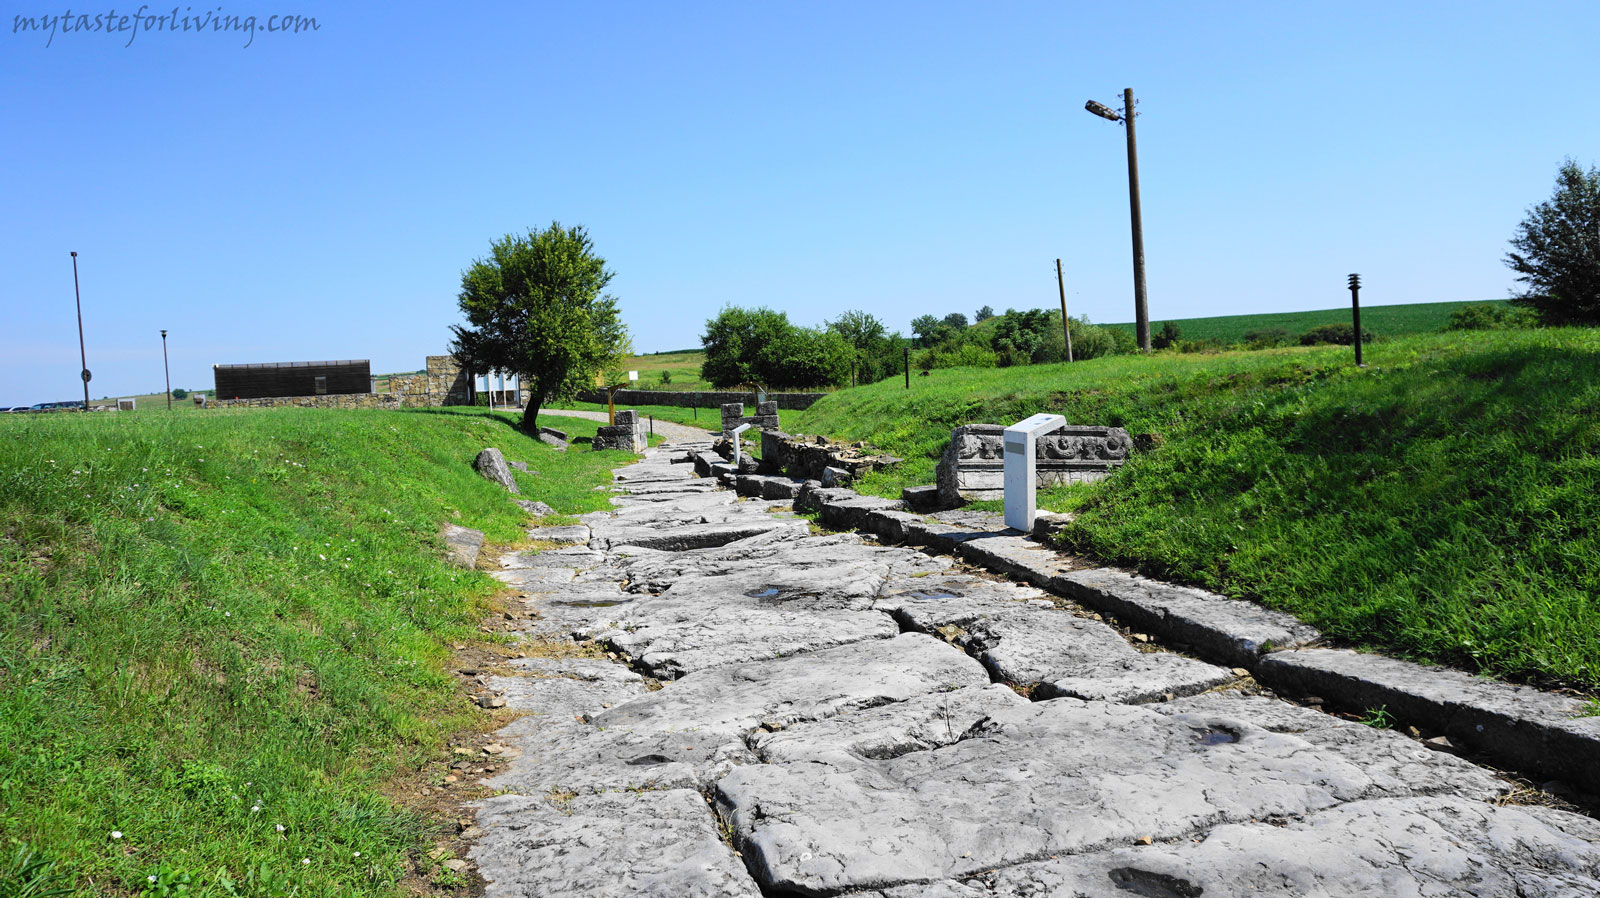 "The remains of the early Byzantine town of Nicopolis ad Istrum (translated ""City of Victory on the Danube"") are located about 20 km north of the town of Veliko Tarnovo, Bulgaria, on the road to Ruse."